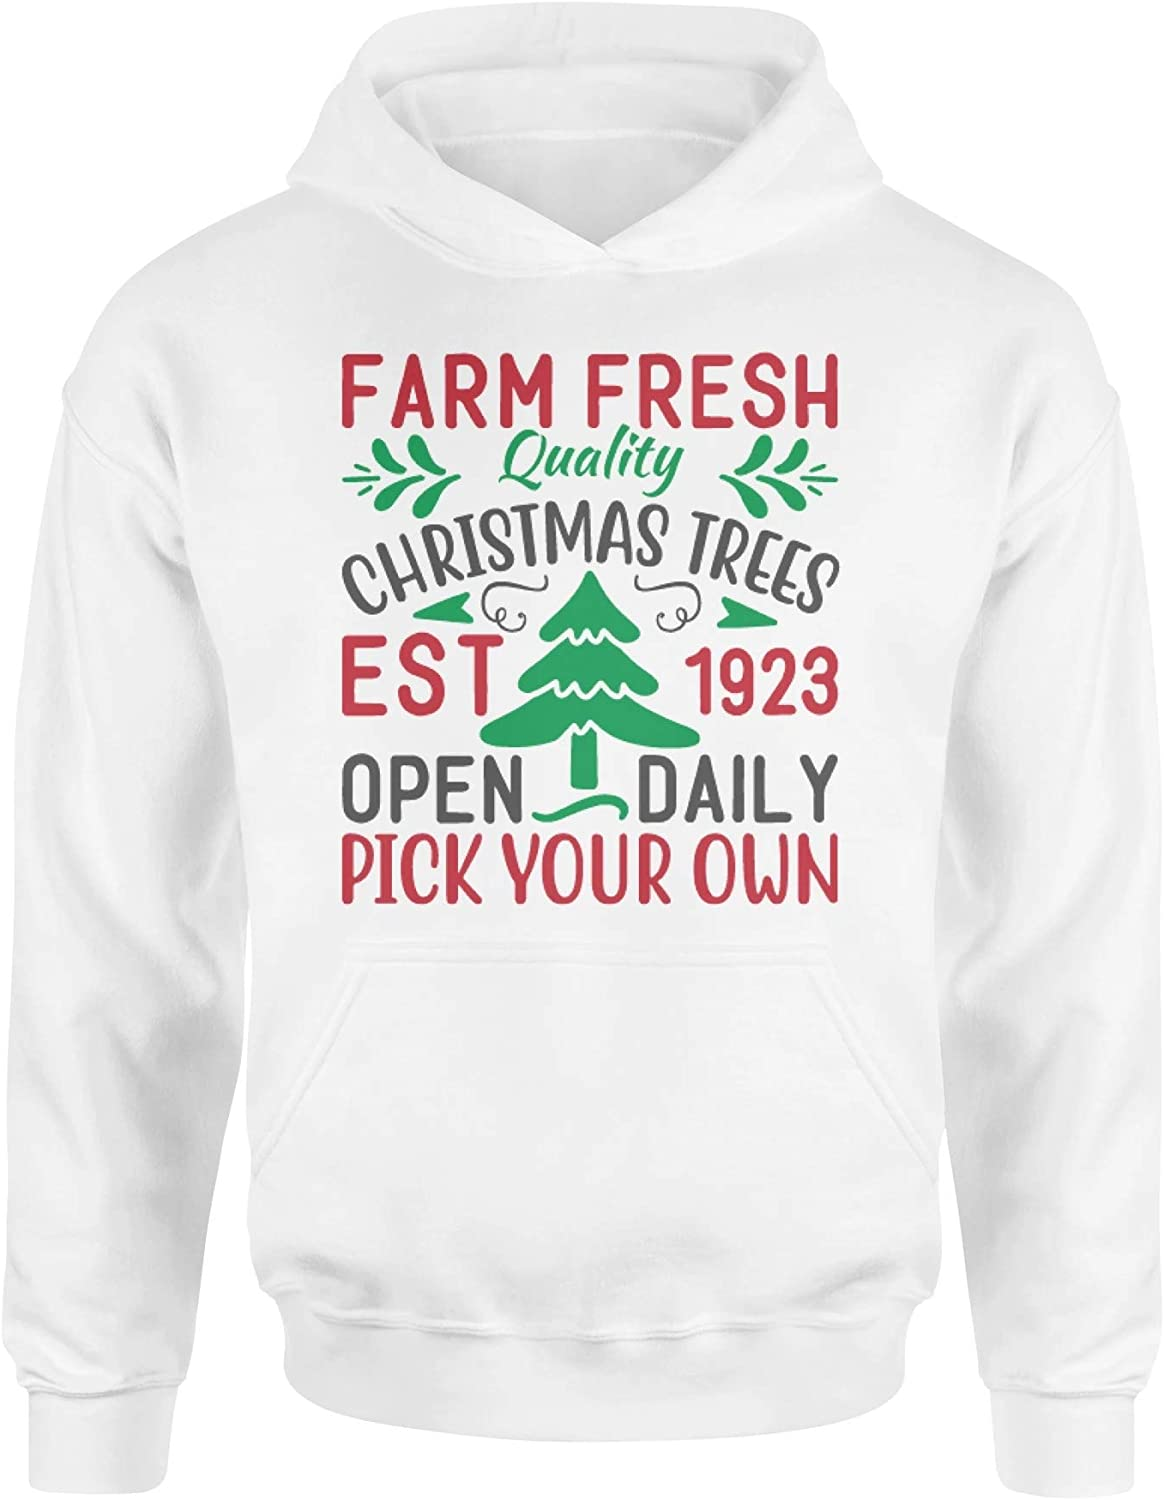 Buy 3ChipPOD Farm Fresh Quality Christmas Trees est 1923 Open Daily Pick Your own Christmas Standard Hoodie Hooded Sweatshirt